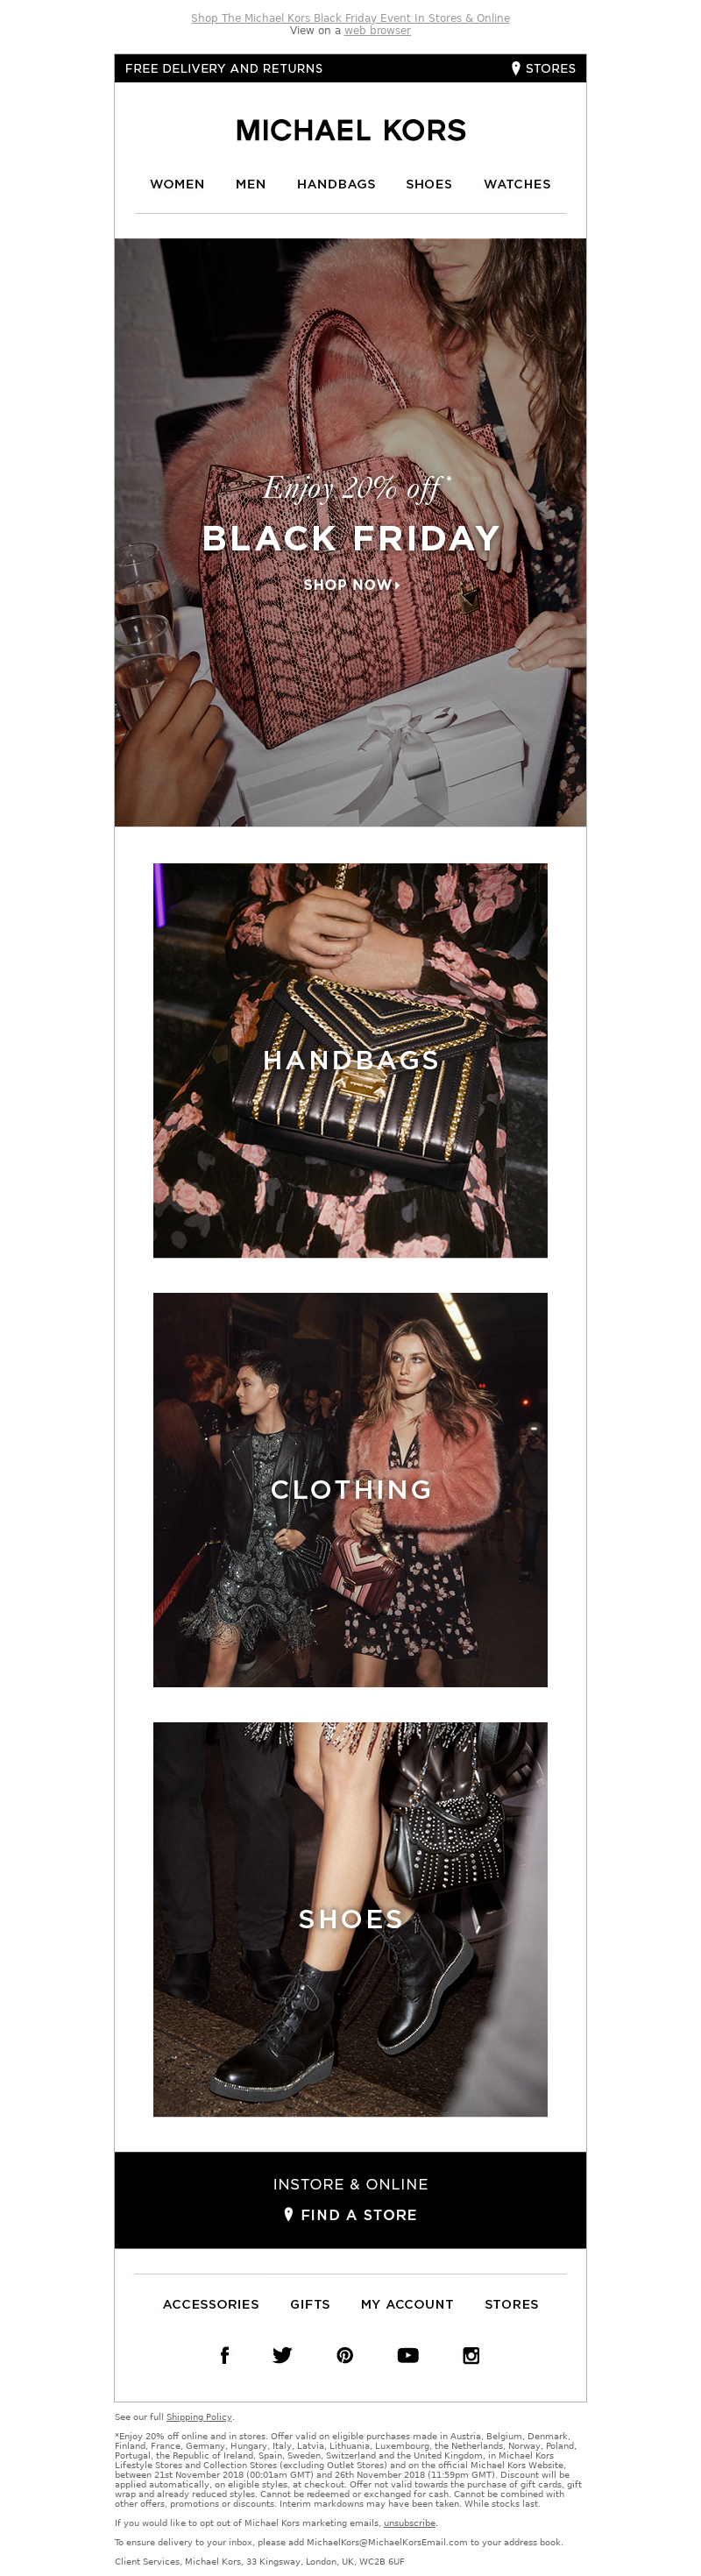 Black Friday email marketing by Michael Kors